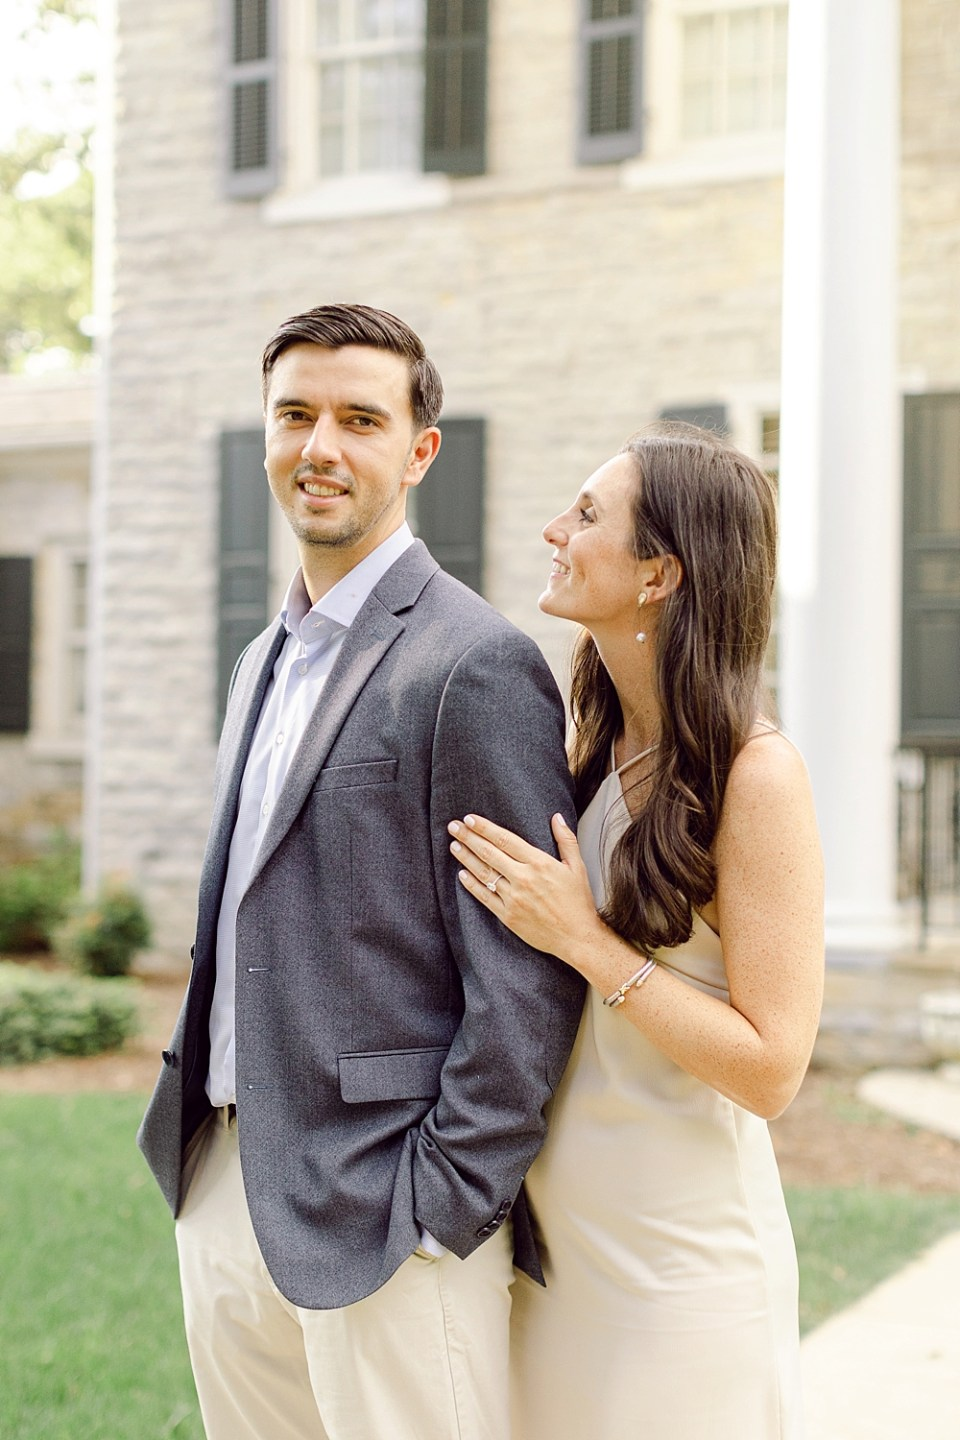 lancaster pennsylvania engagement photos | sarah canning photography